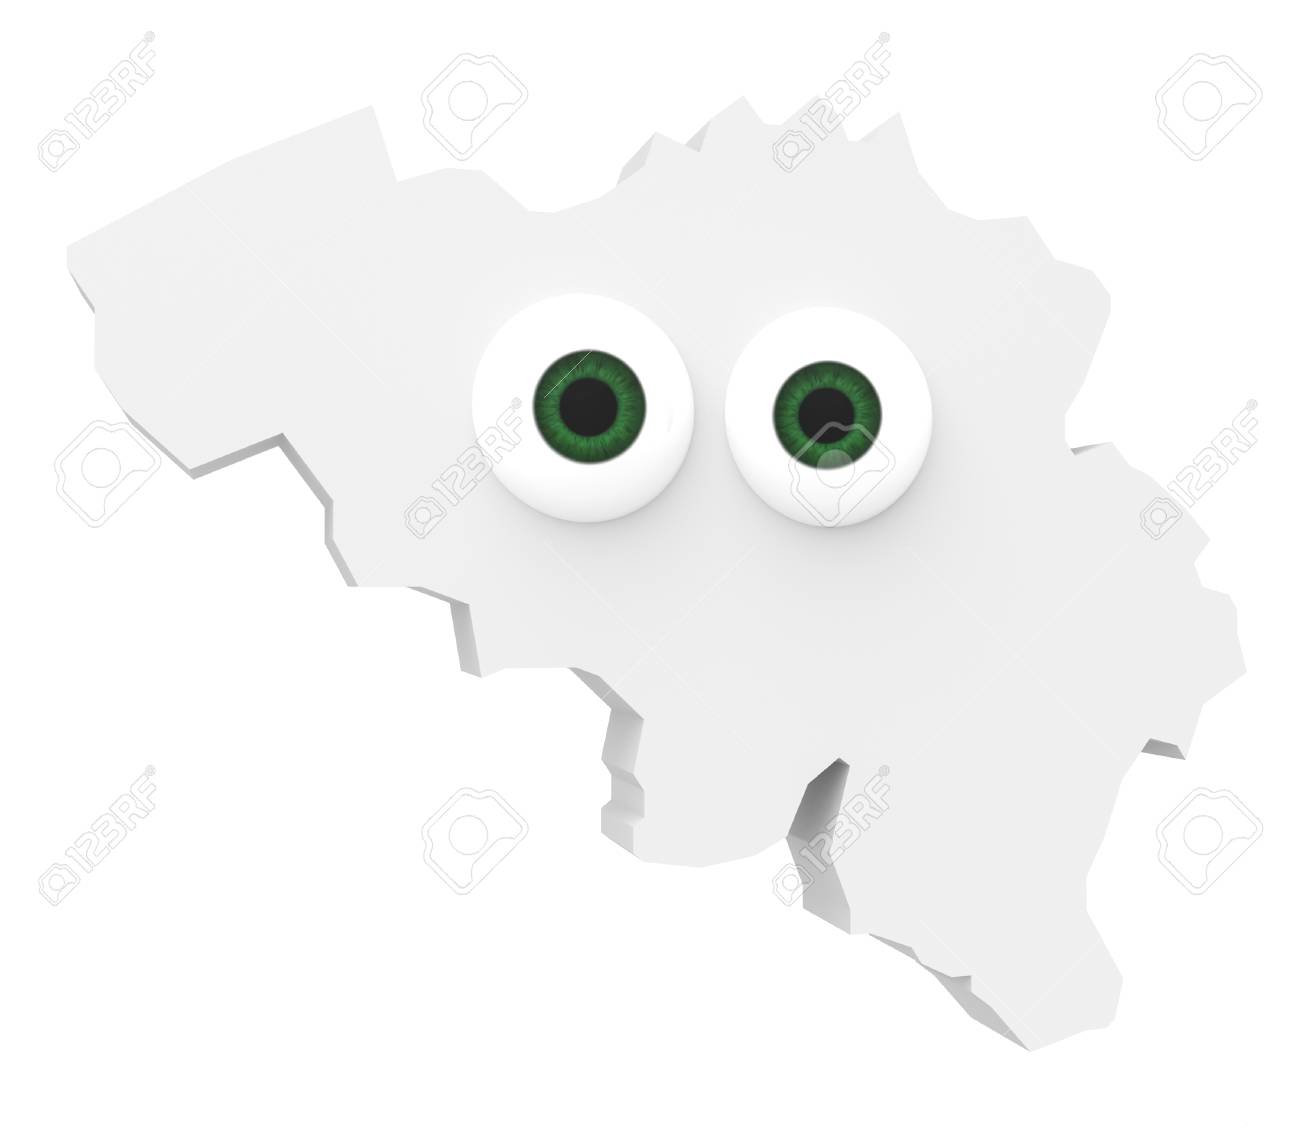 cartoon country map belgium with big eyes isolated on white background 3d illustration stock illustration